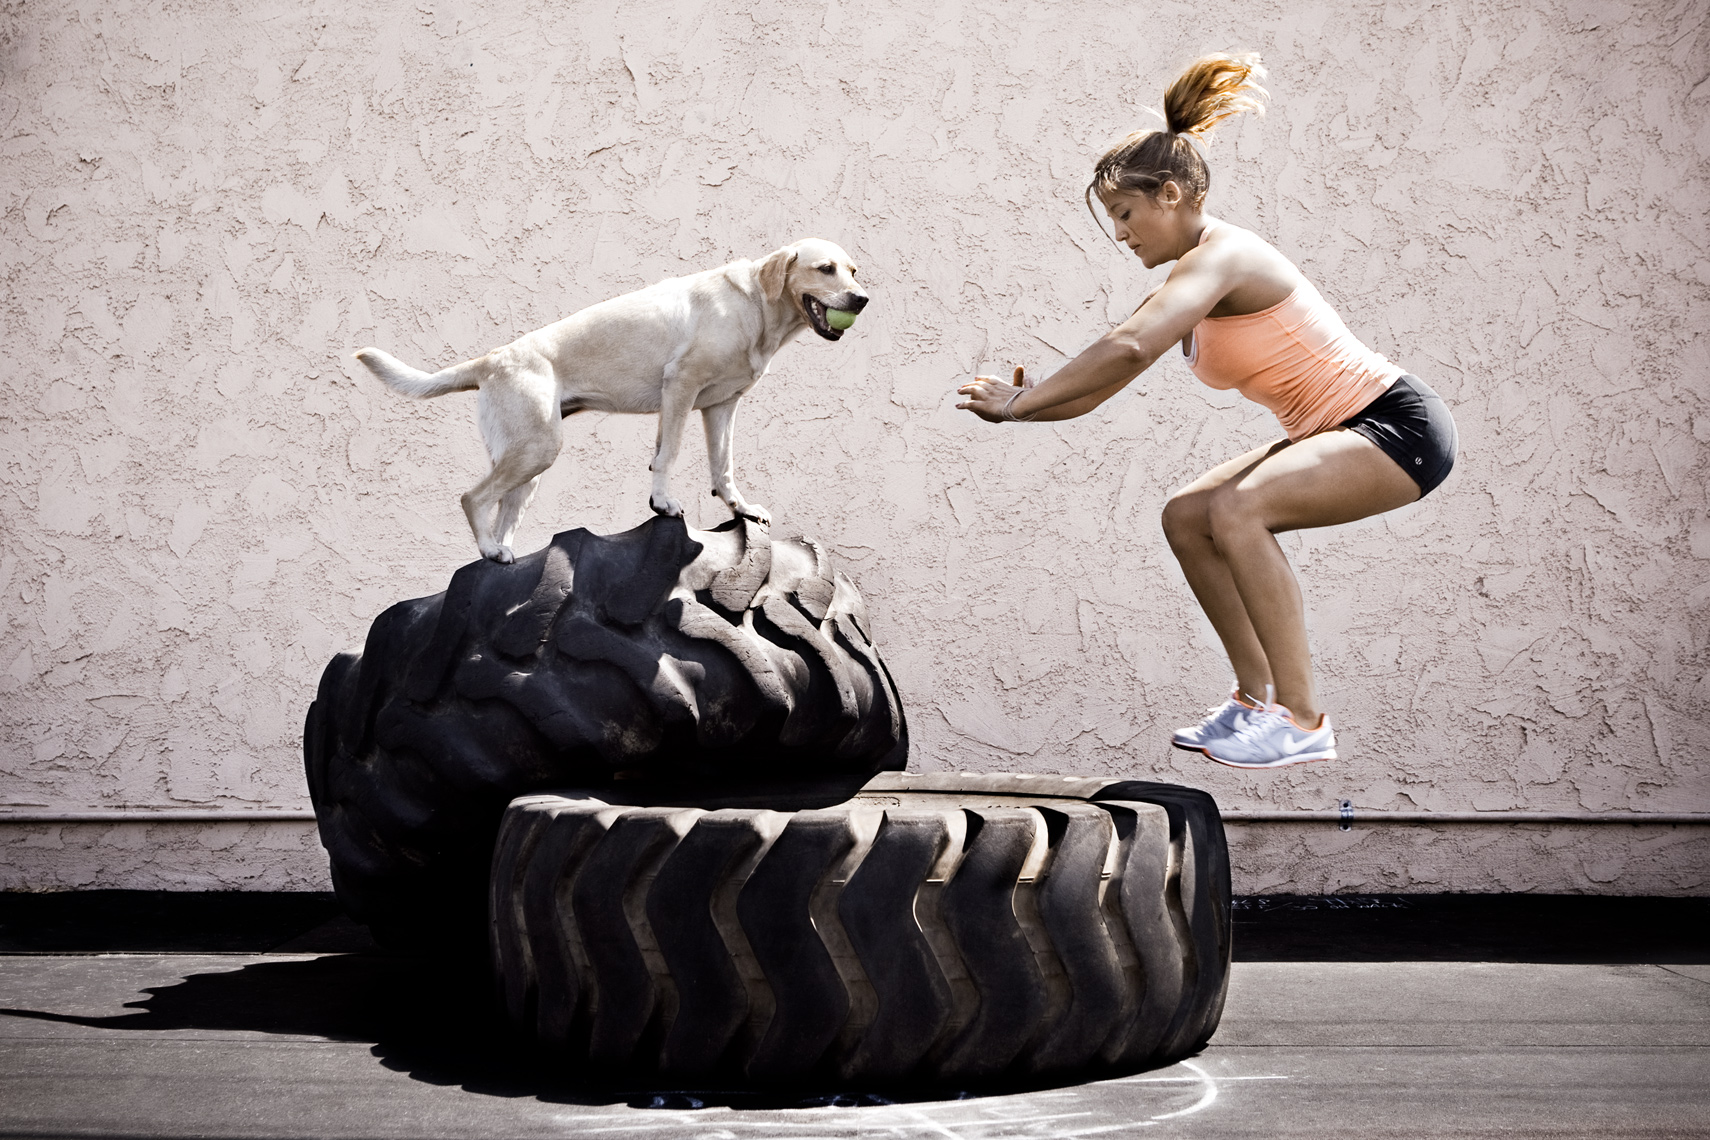 Crossfit, LA Dog Photography, Michael Brian, Los Angeles, Sports, Gilly Smith tire jumps, Yellow Labrador, Orange Coast Crossfit